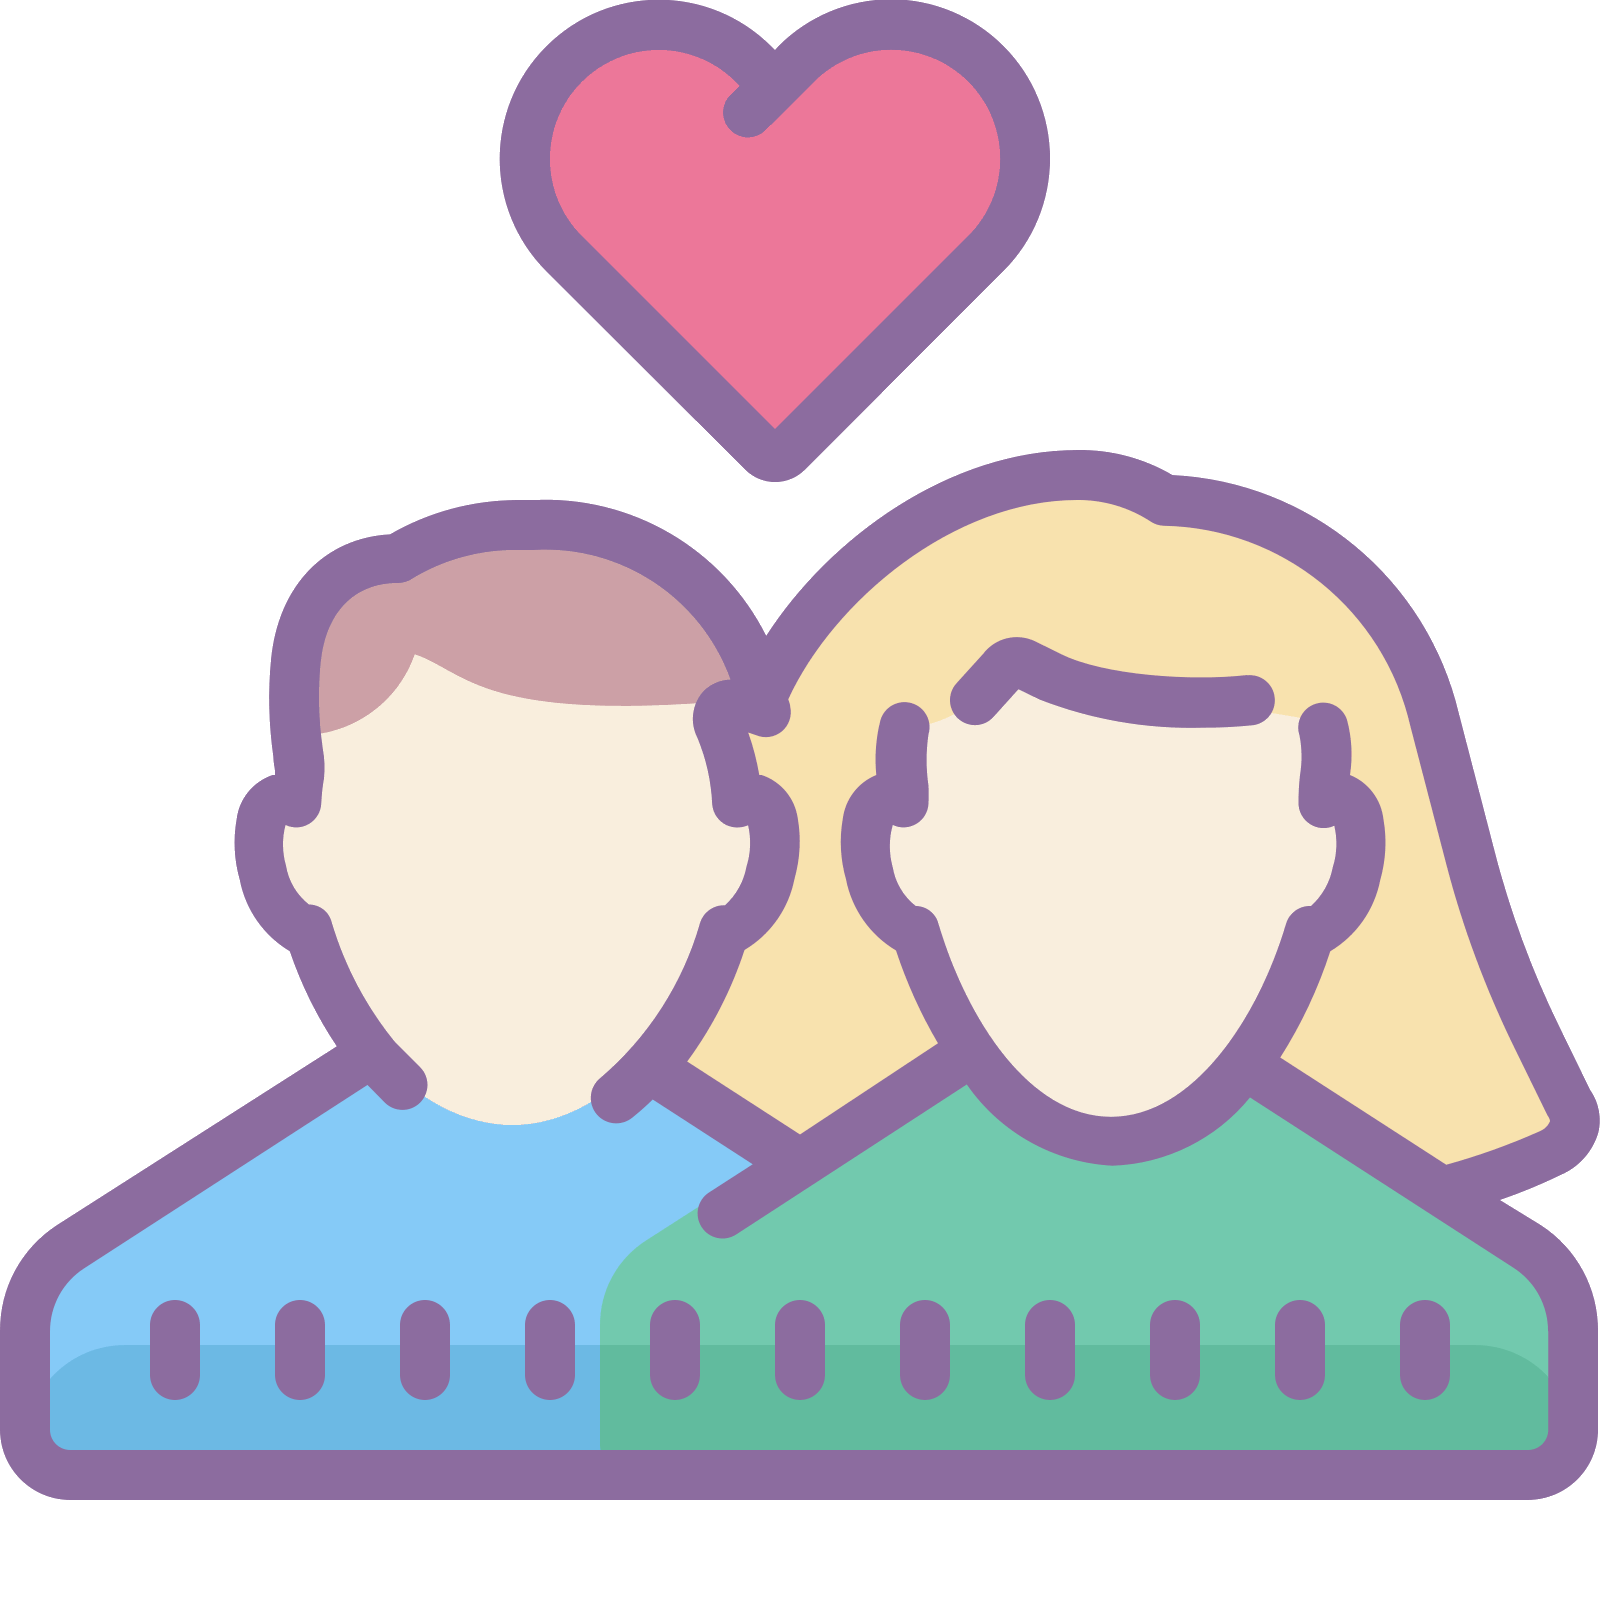 Clipart bed man woman.  couple png icon